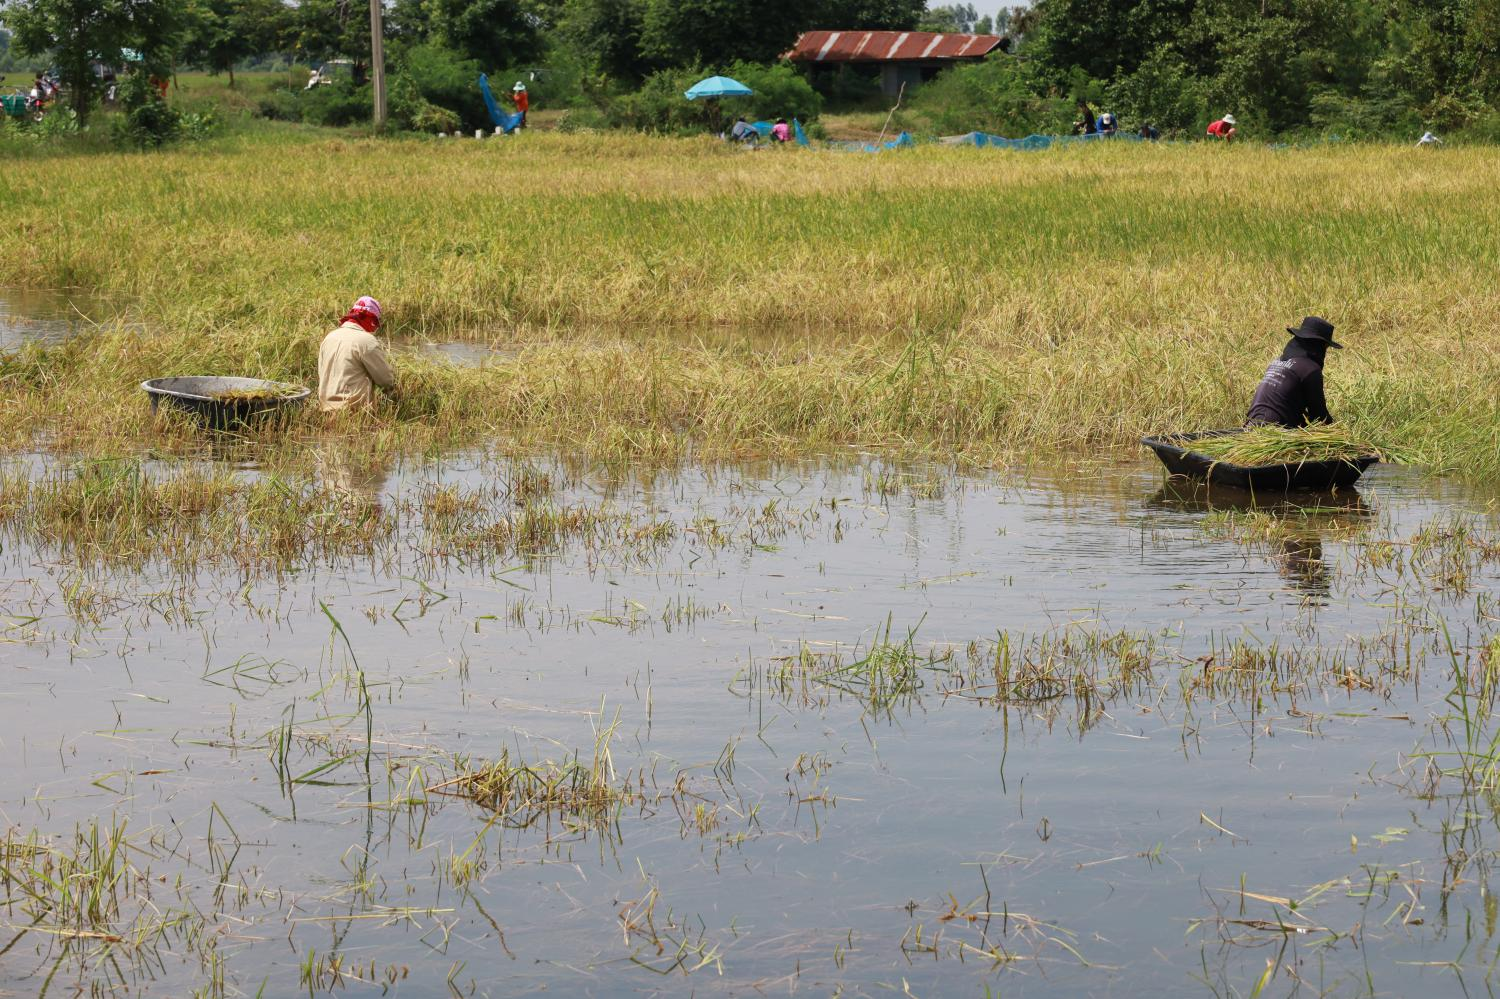 A file photo shows farmers harvesting rice from an inundated rice field in Nakhon Ratchasima in October 2020. Despite periodic floods in certain areas, the region's farming sector faces a drastic water shortage almost every year. (Photo: Prasit Tanprasert)